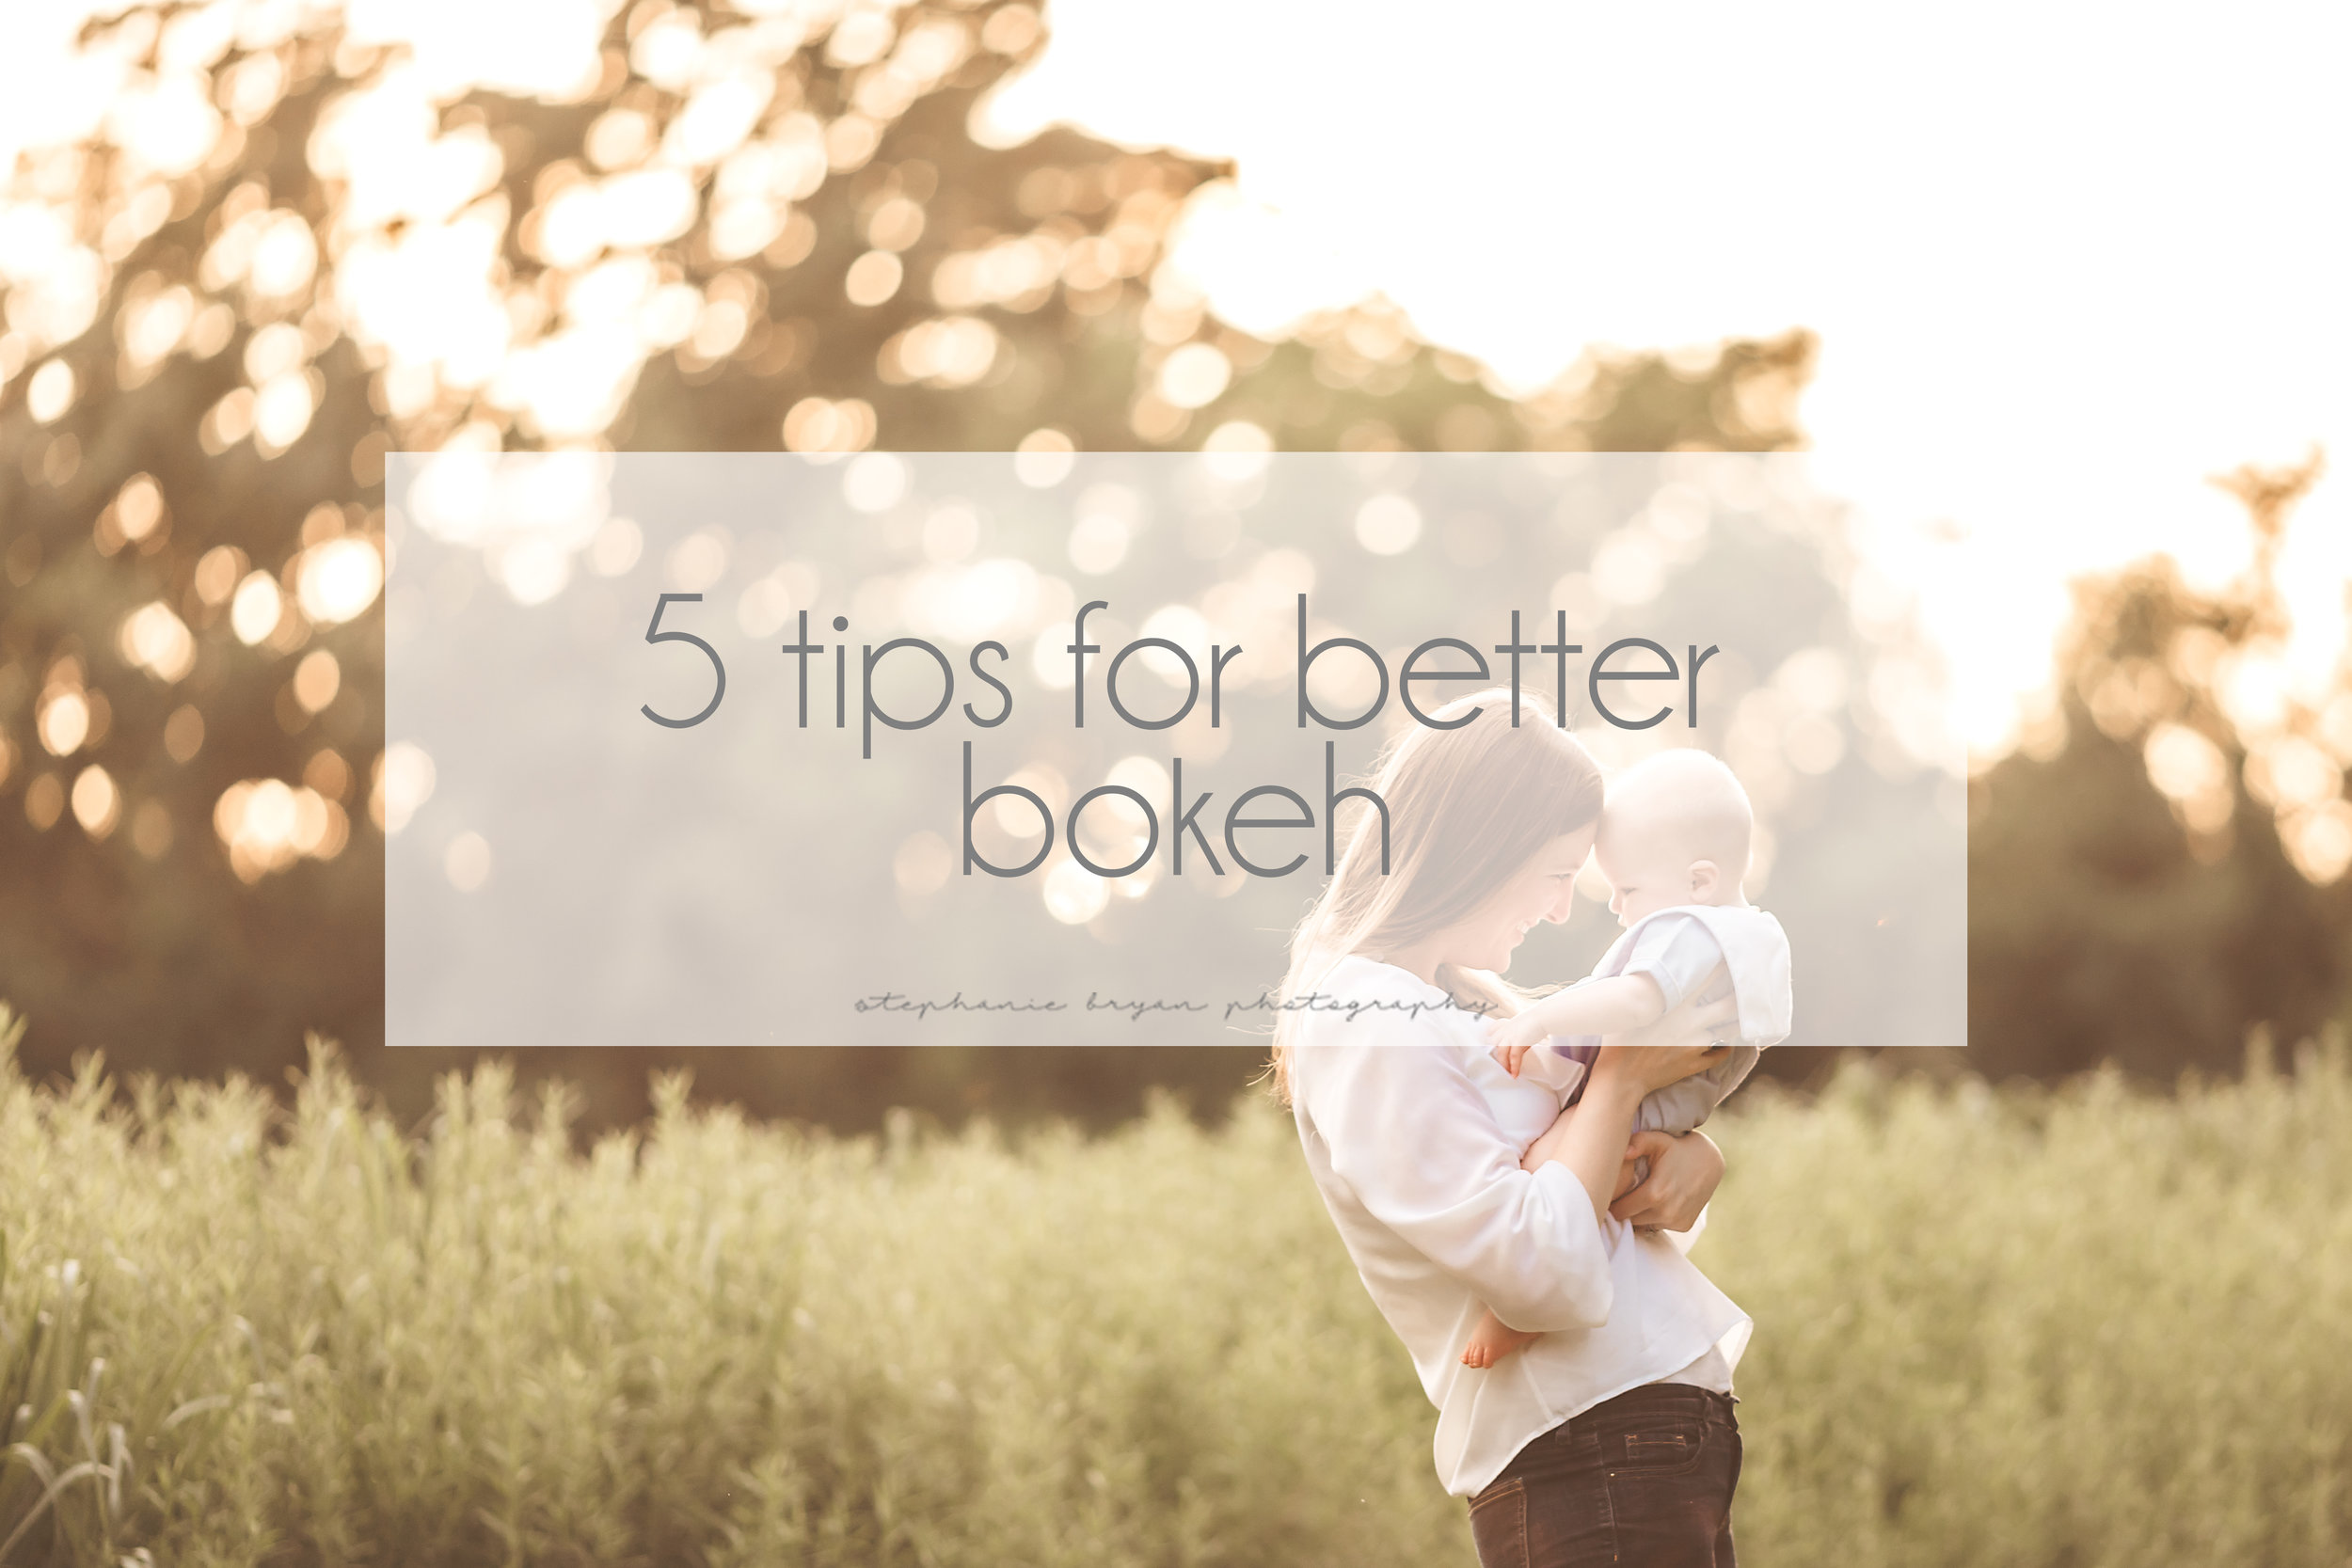 Stephanie Bryan Photography - 5 tips for better bokeh